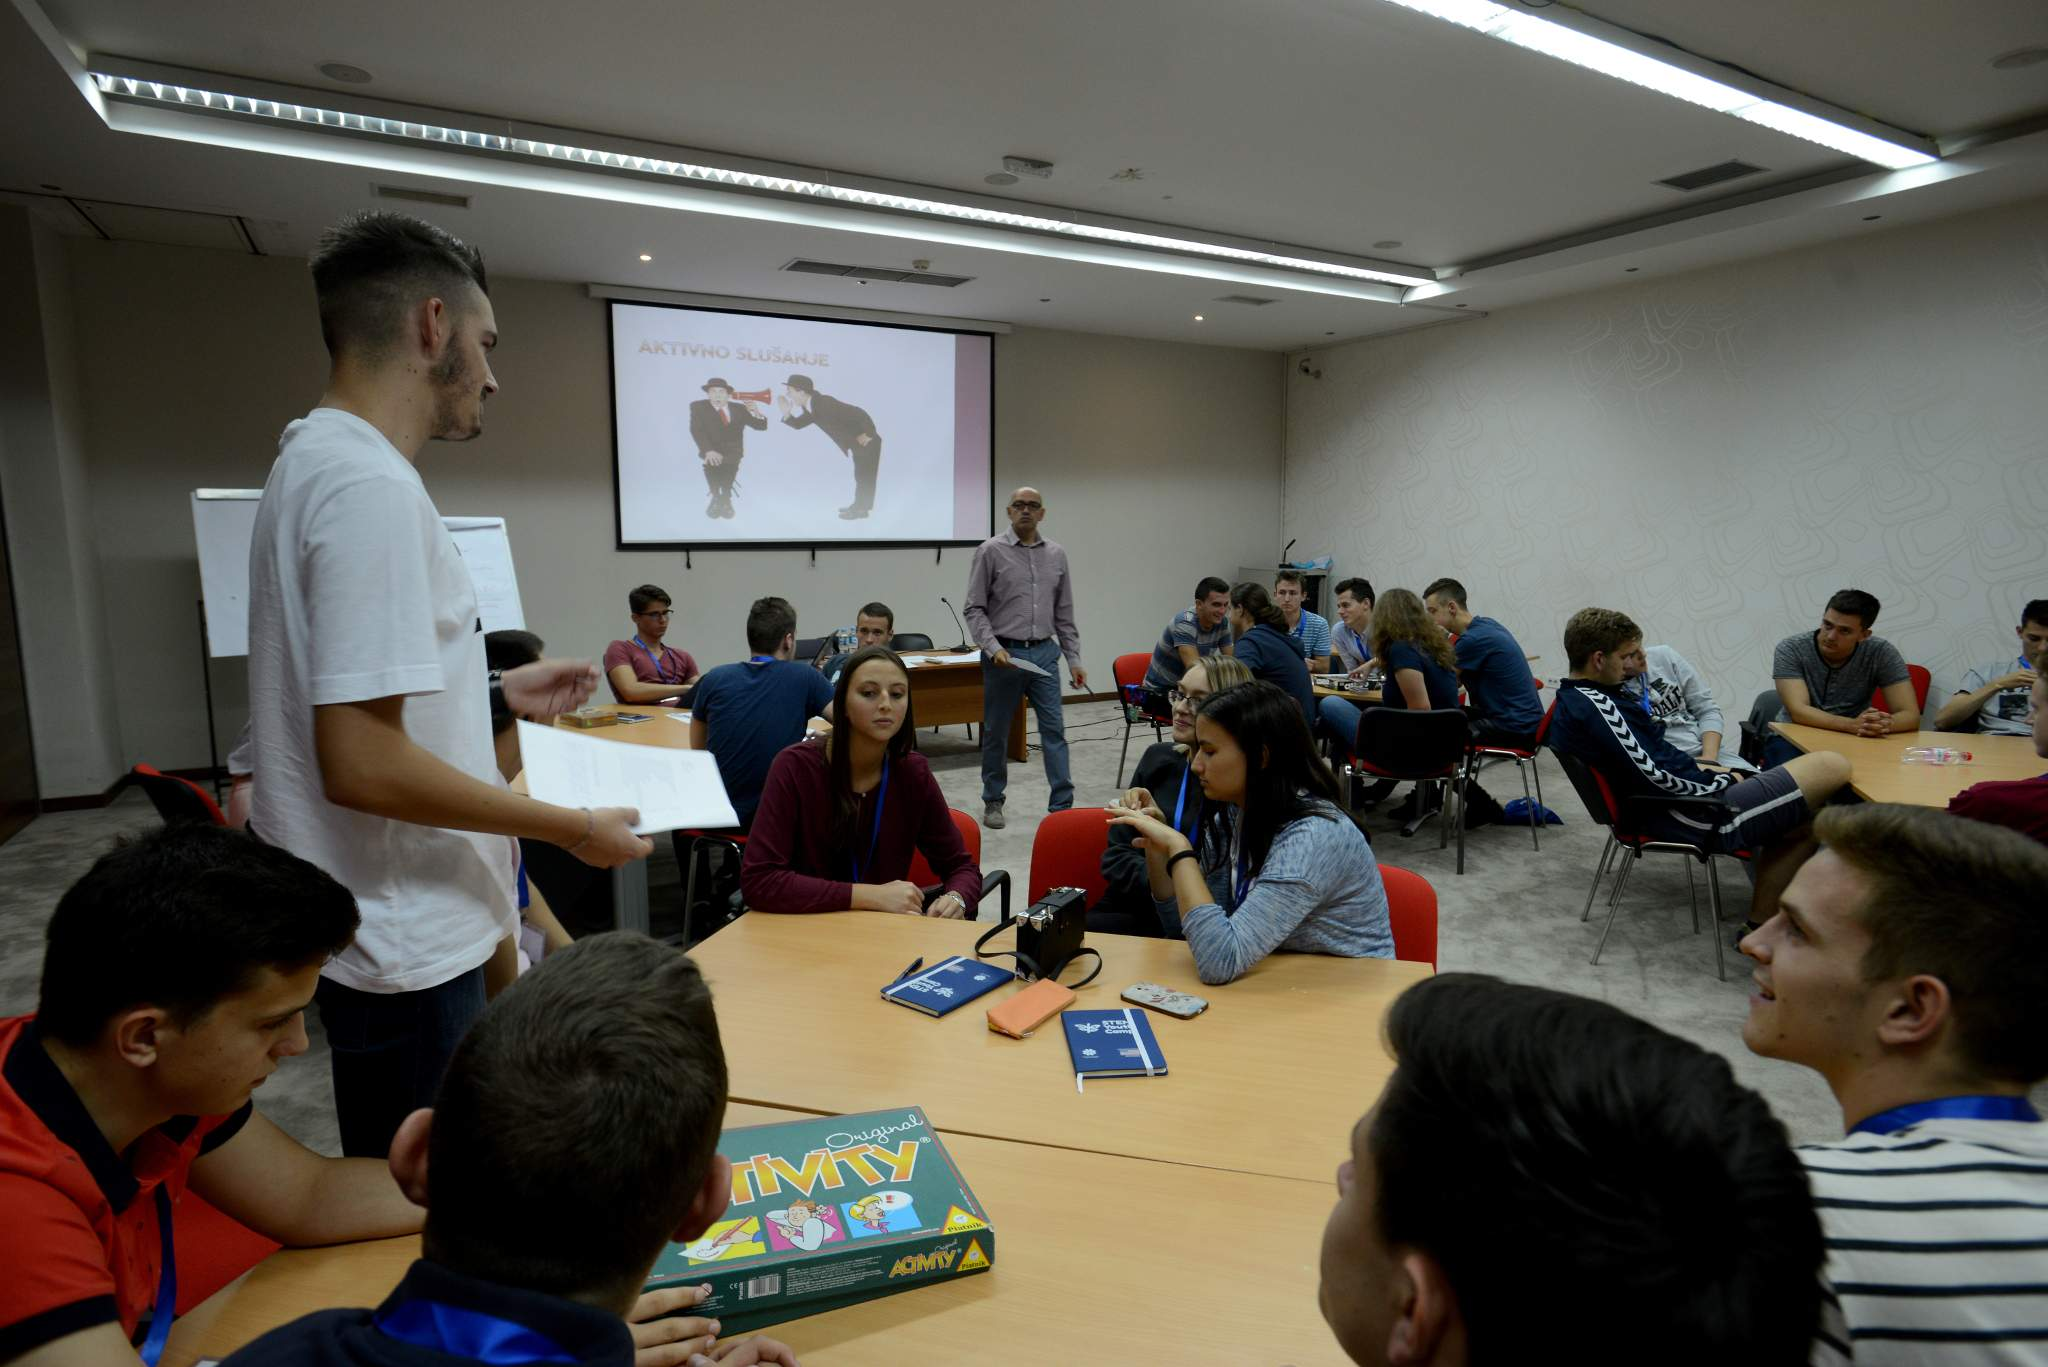 STEM Youth Camp - Pregled i utisci - slika 1.jpg - STEM Youth Camp 2018 - Pregled i utisci